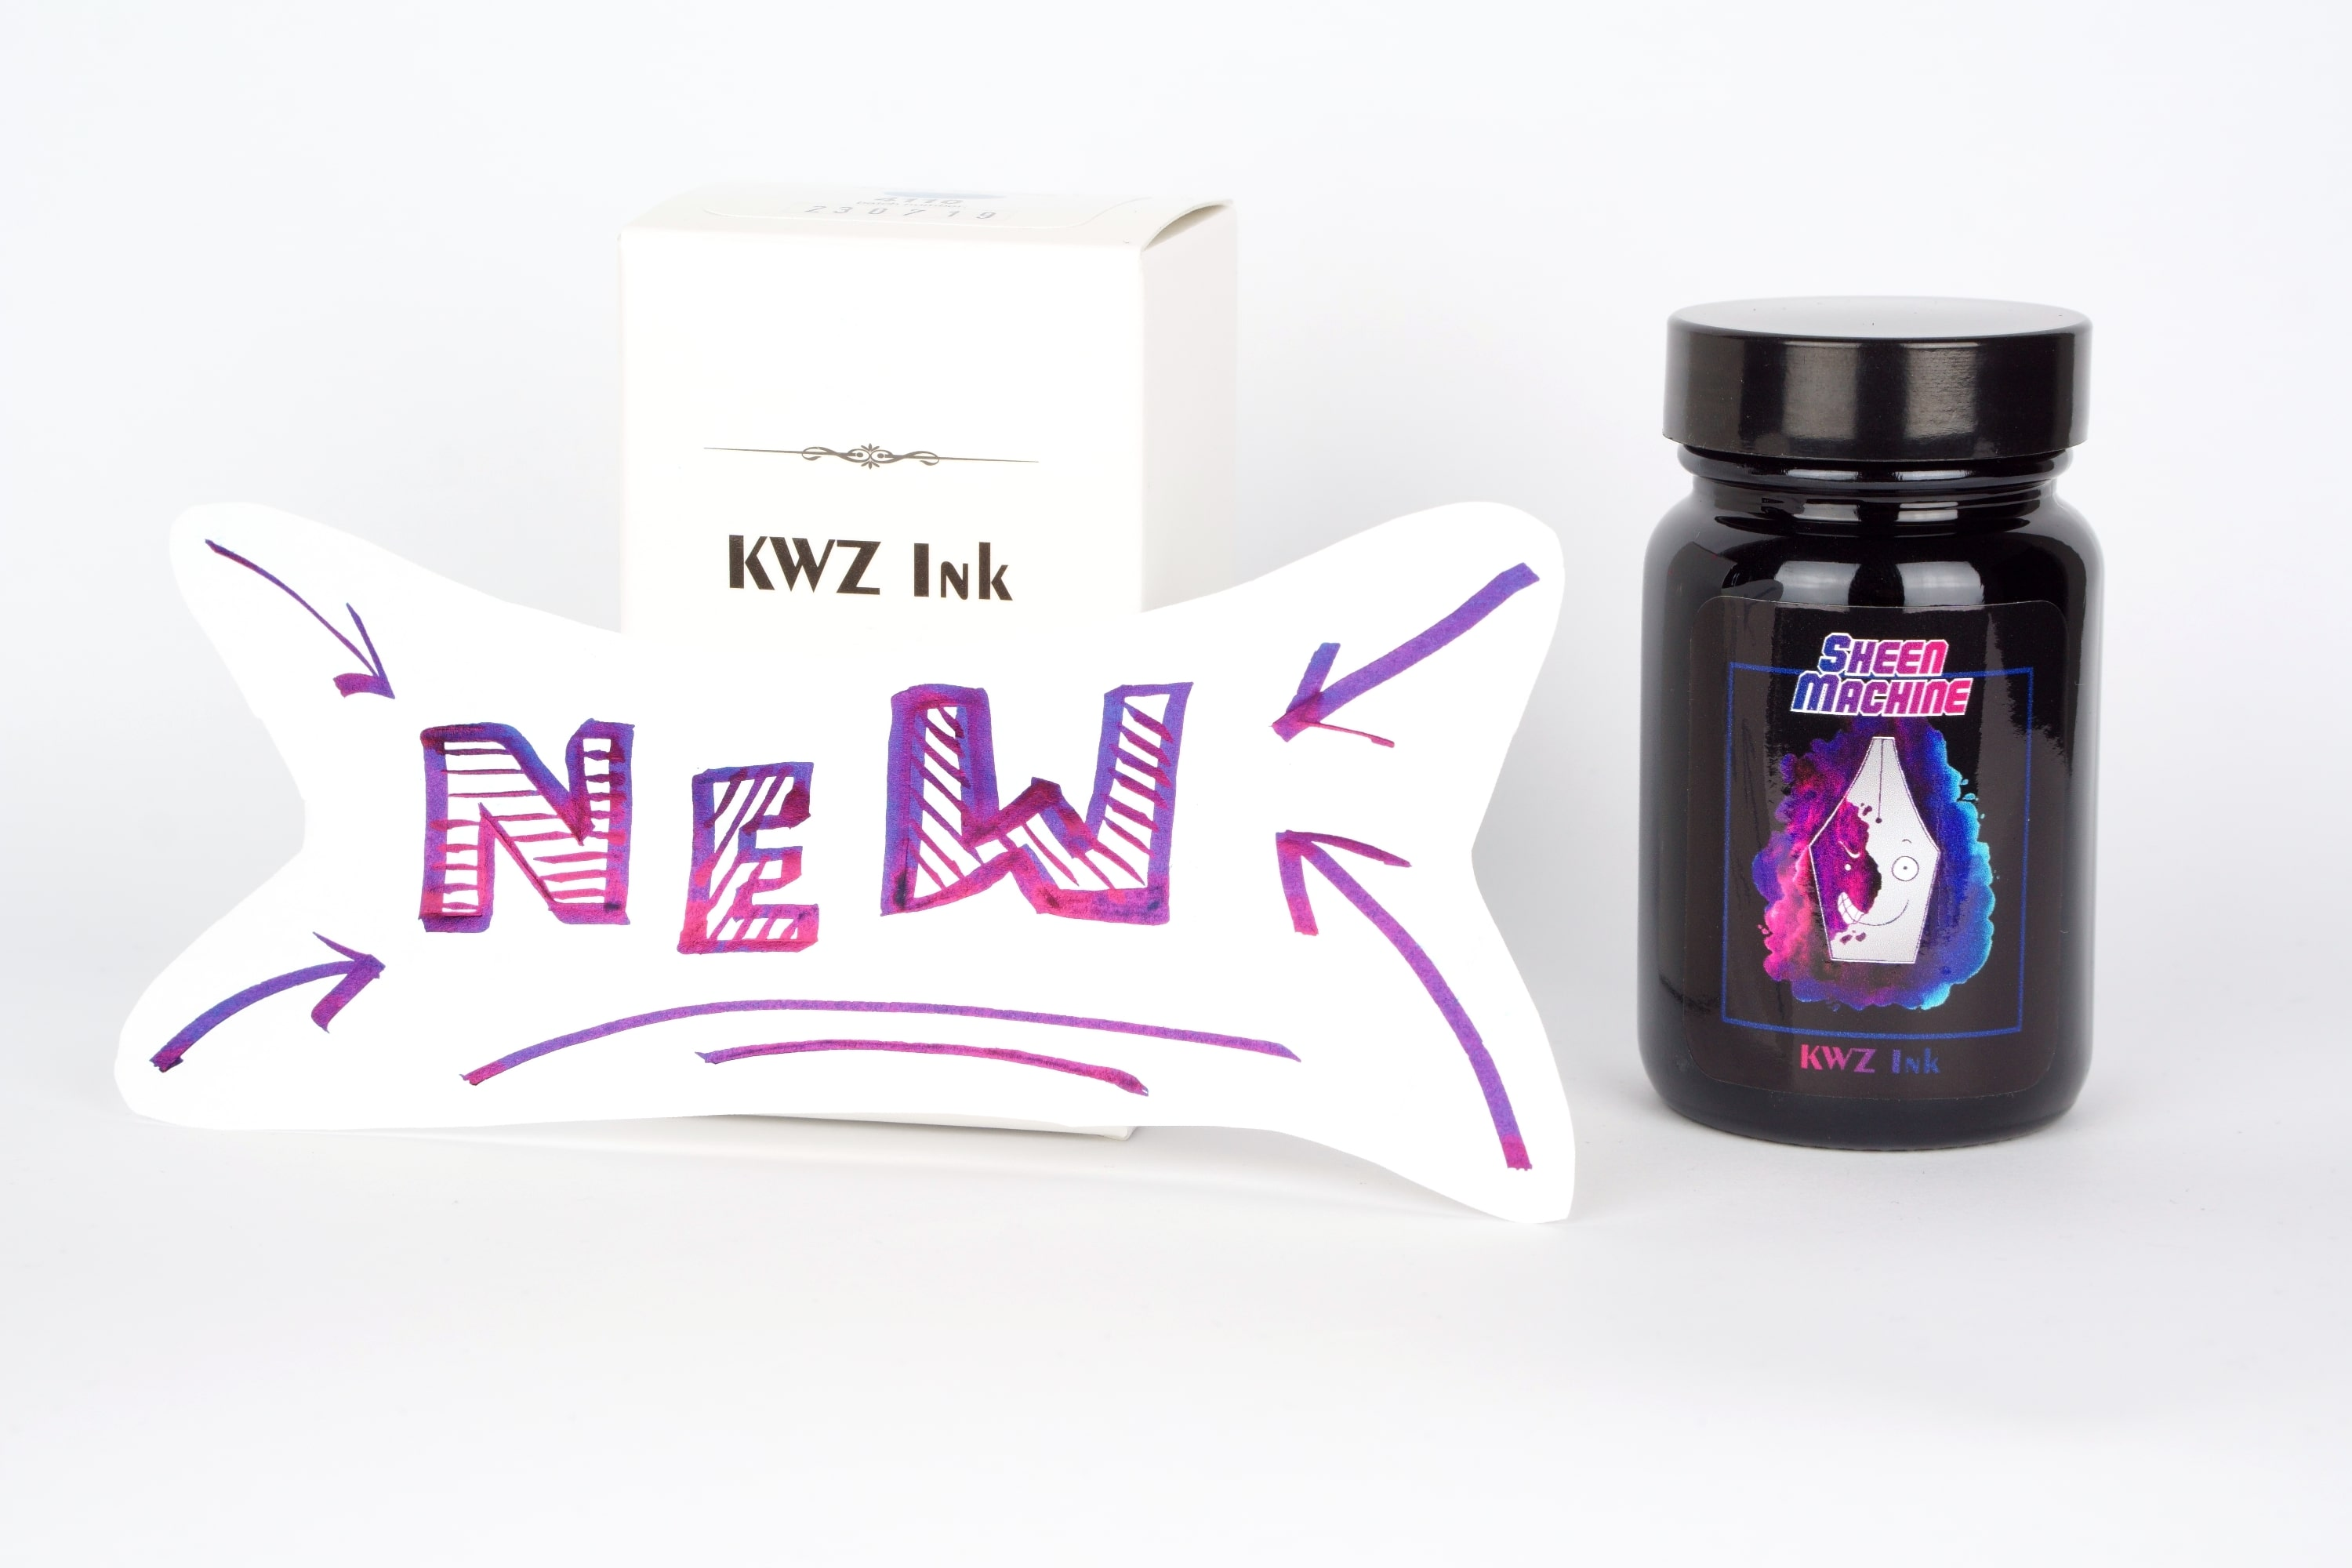 KWZ-Ink-Sheen-Machine-1.jpg